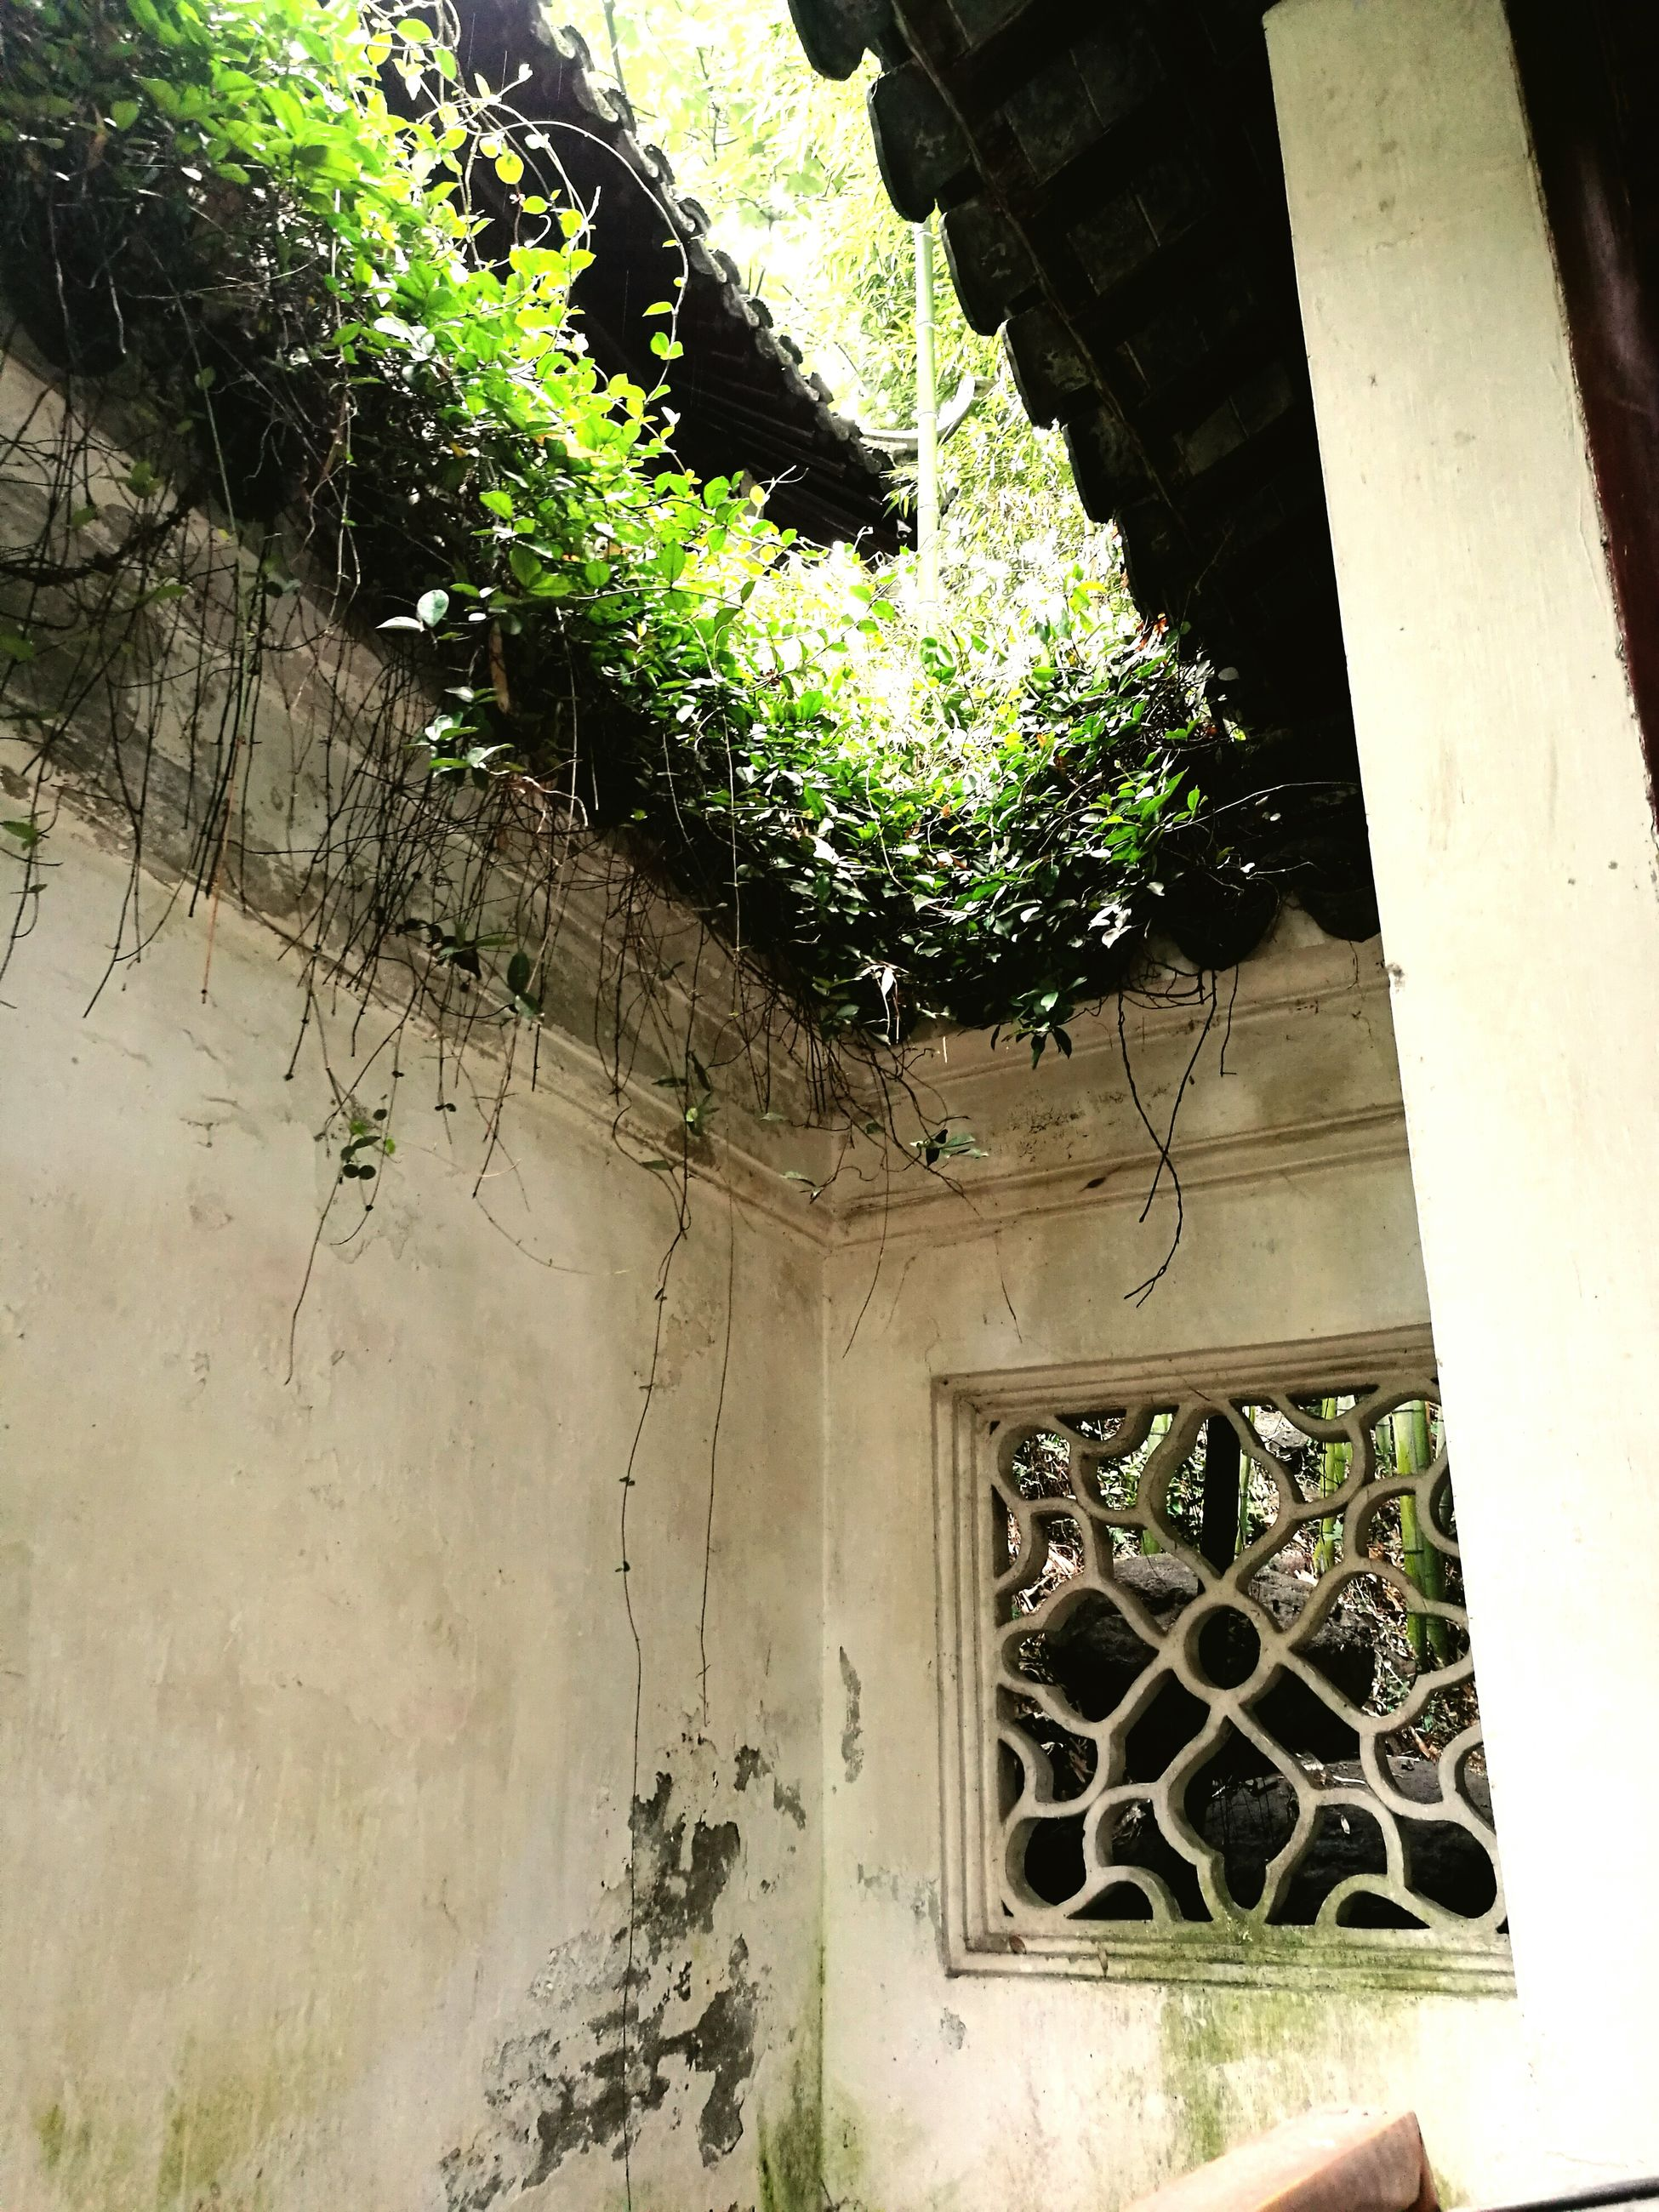 architecture, built structure, house, plant, building exterior, low angle view, growth, damaged, messy, day, growing, no people, weathered